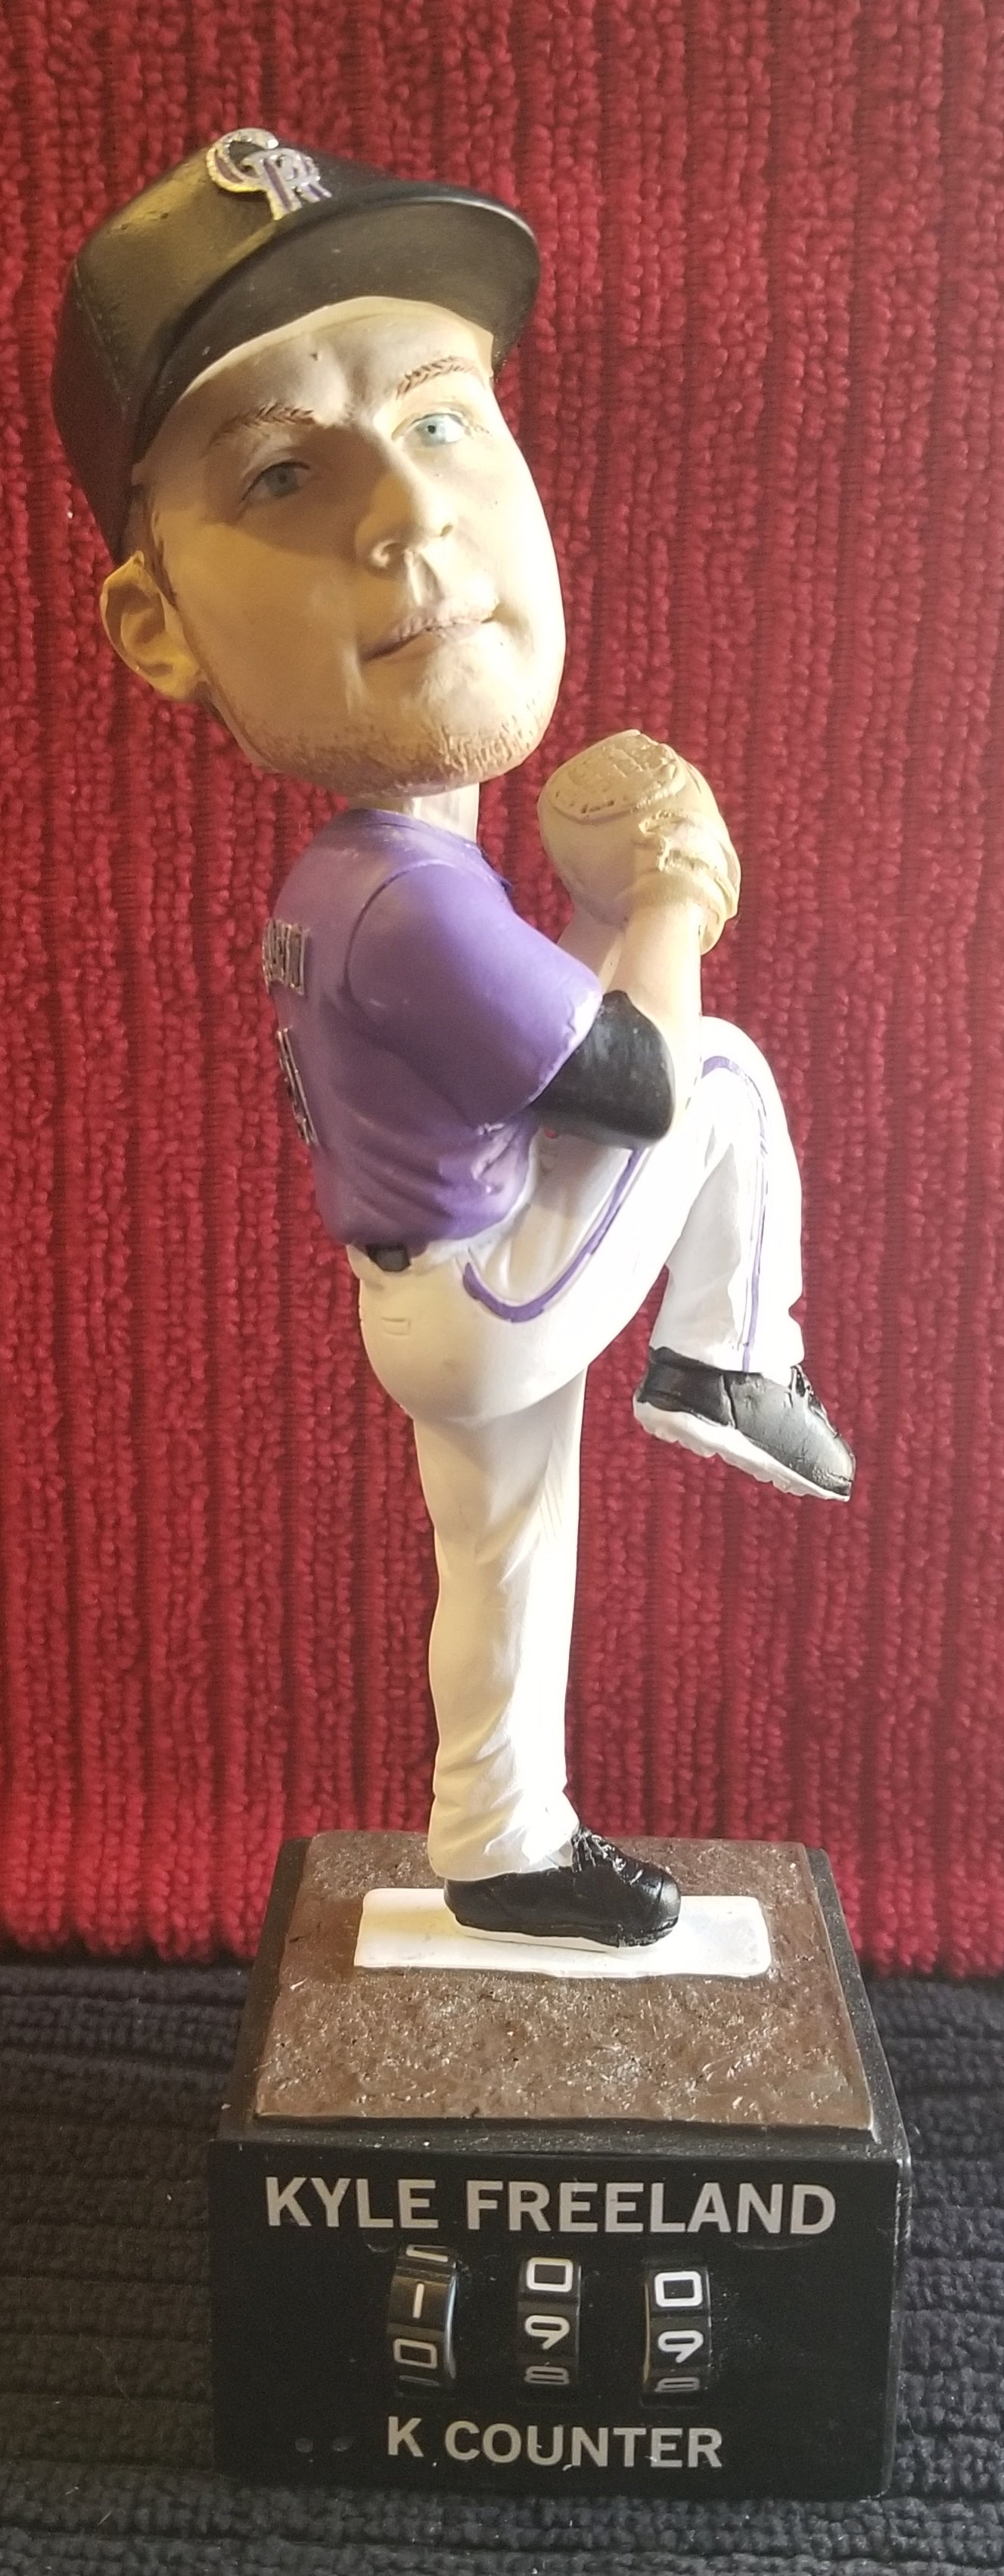 Kyle Freeland #21 2019 Colorado Rockies Newmont Goldcorp sponsored (SGA) Bobblehead